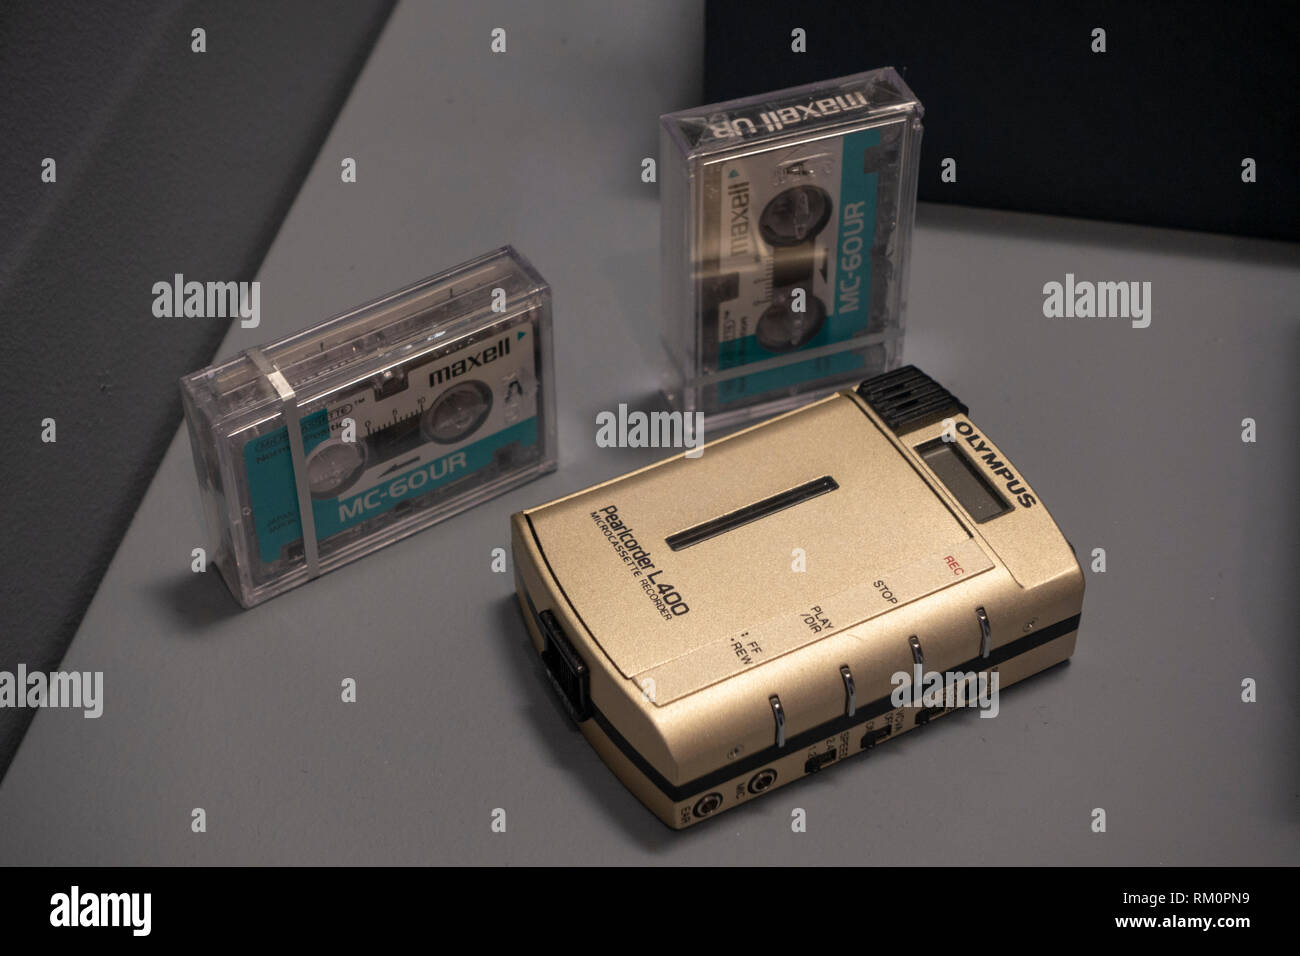 Olympus Pearlcorder L400 micro-cassette recorder, as used by a Police undercover agent, The Mob Museum, Las Vegas, Nevada, United States. - Stock Image